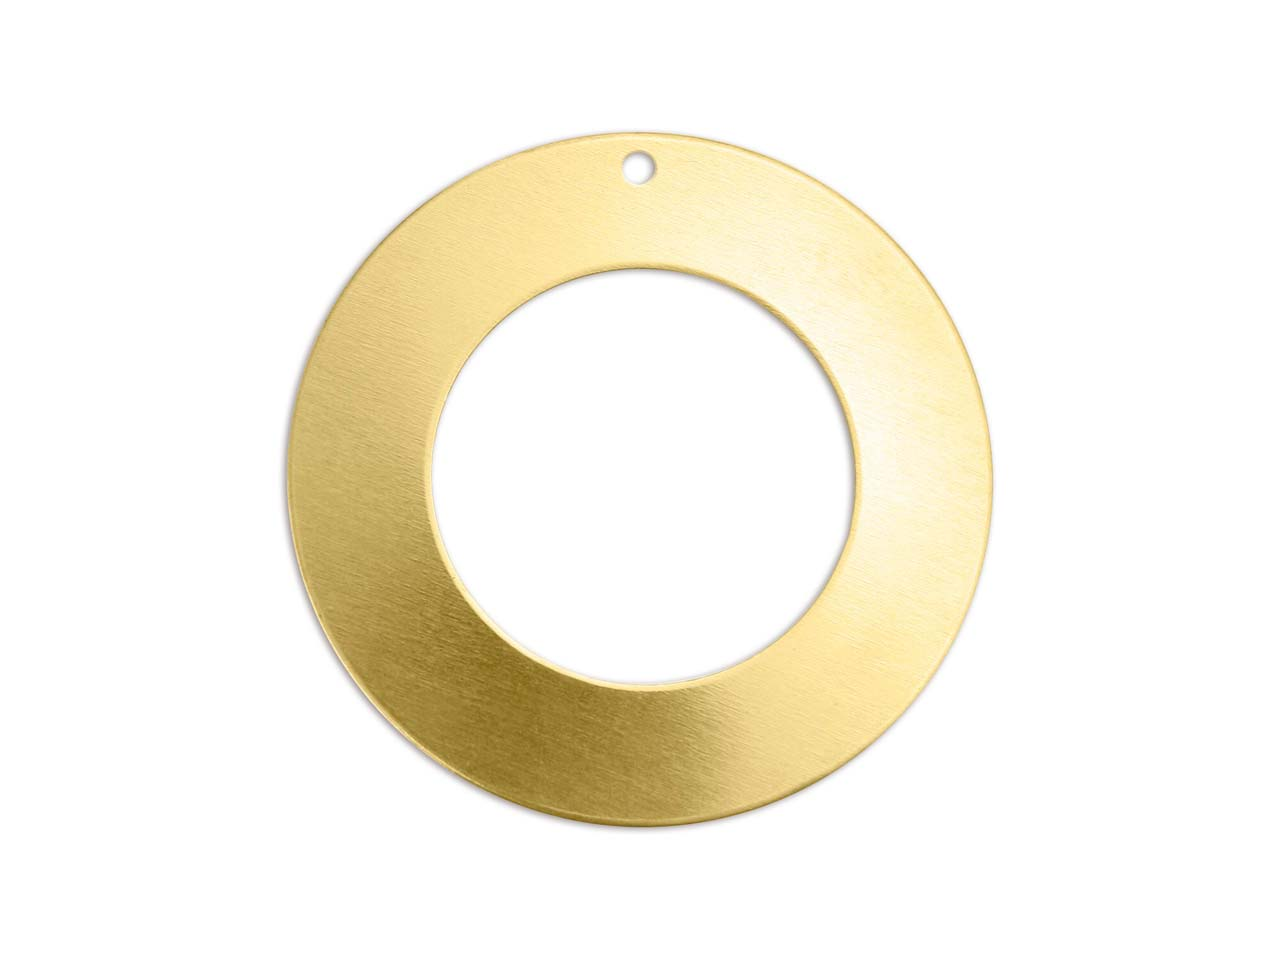 Impressart Brass Washer 32mm       Stamping Blank Pack of 3 Pierced   Hole